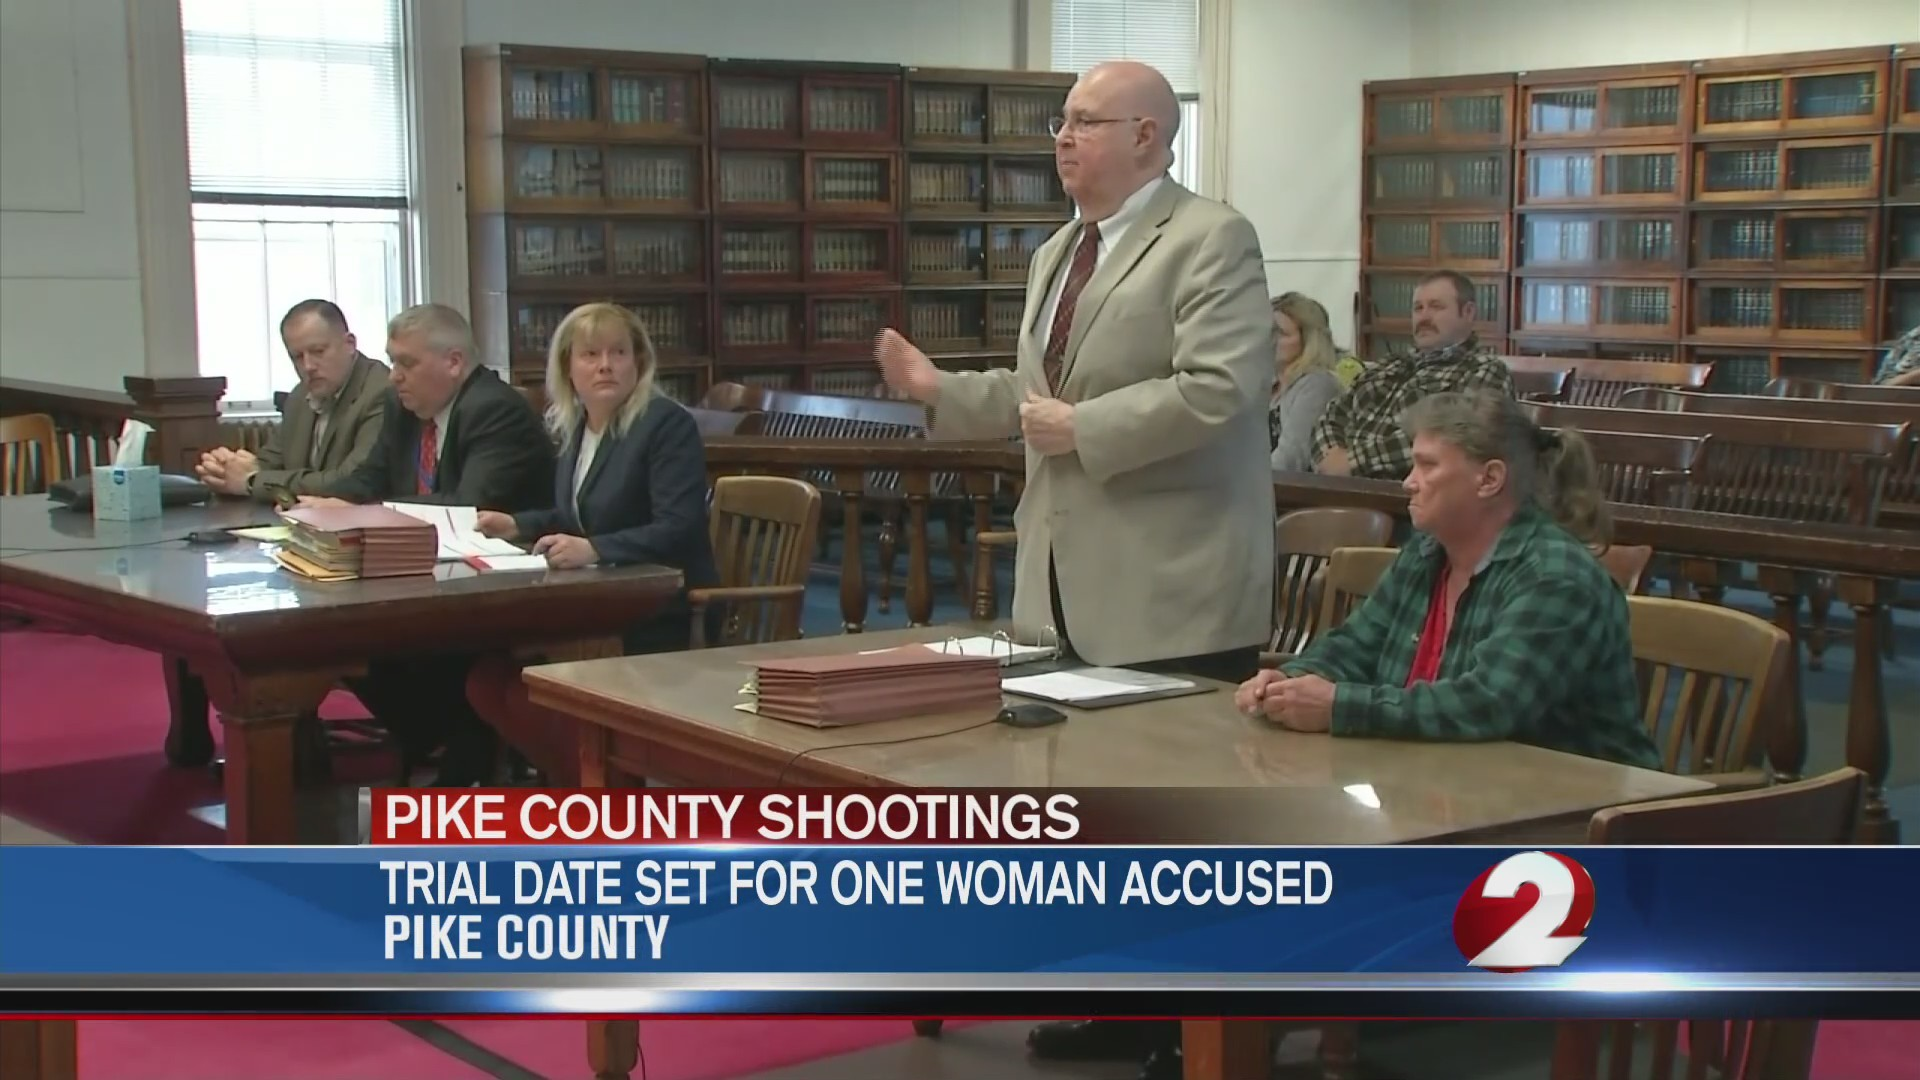 Trial date set for one woman accused in Pike County murders